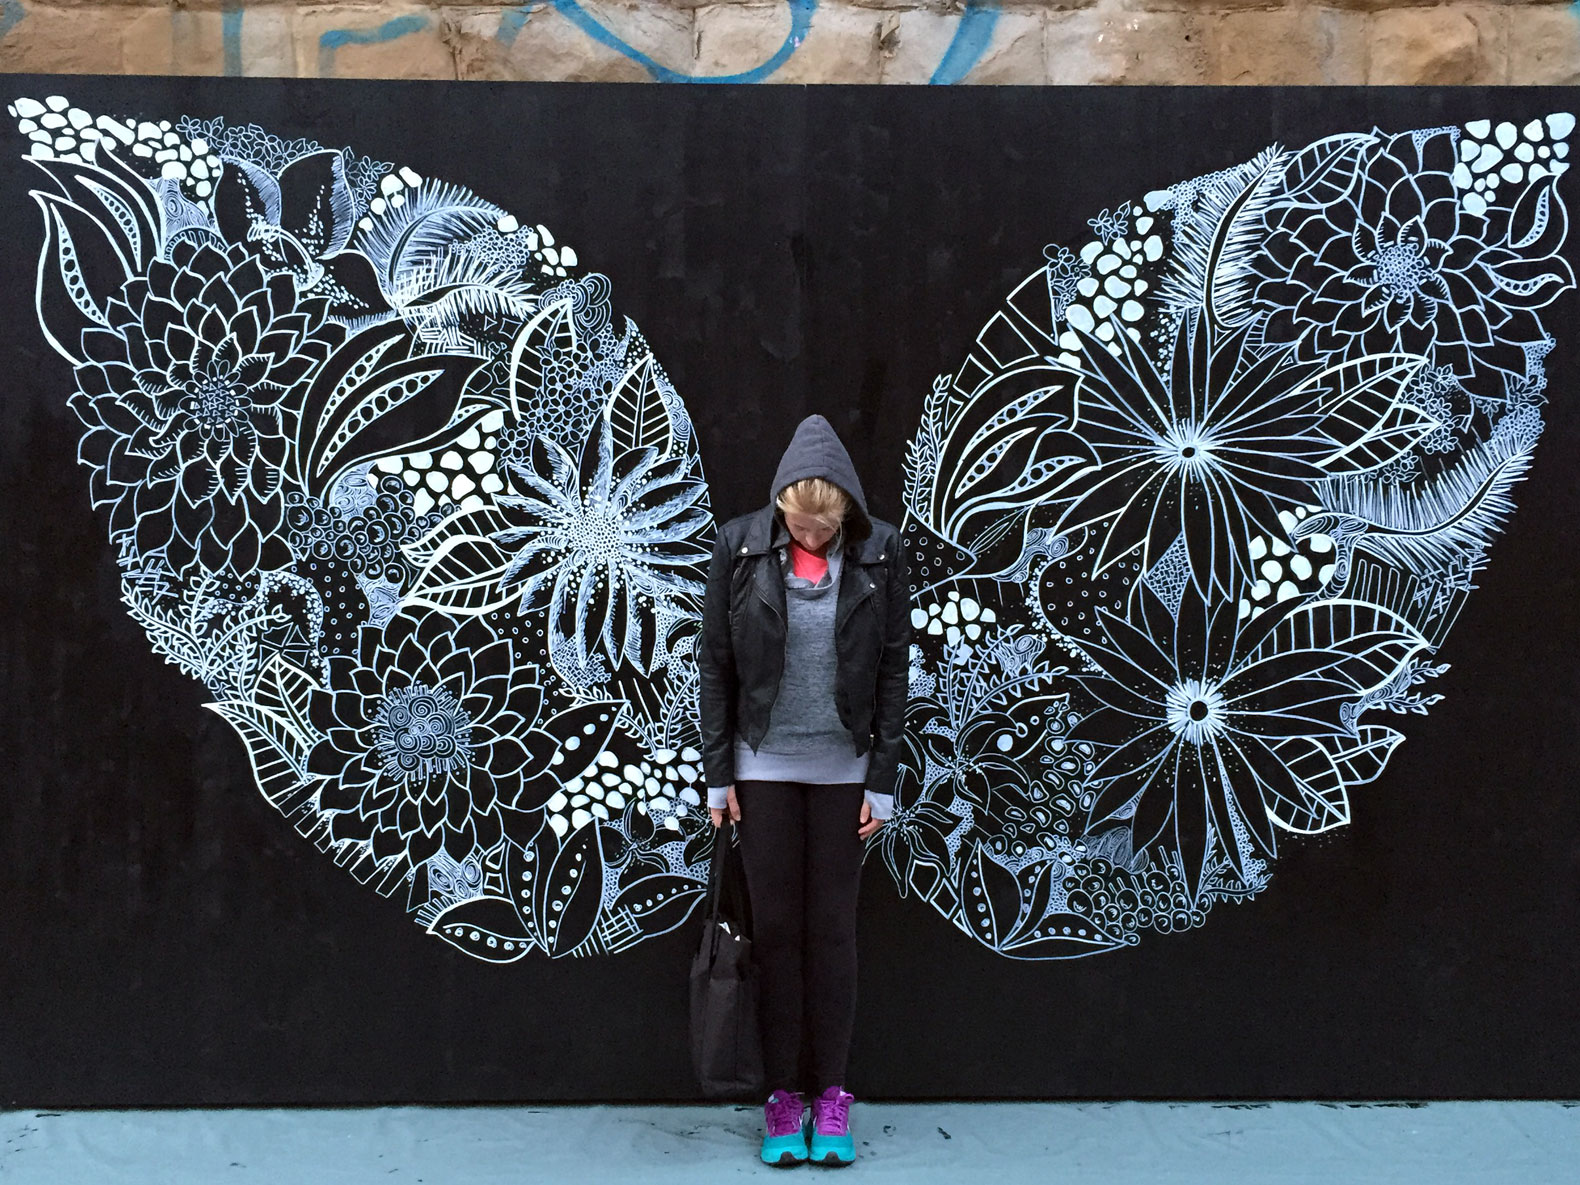 Gorgeous billboards by street artist Kelsey Montague are being recycled into one-of-a-kind bags